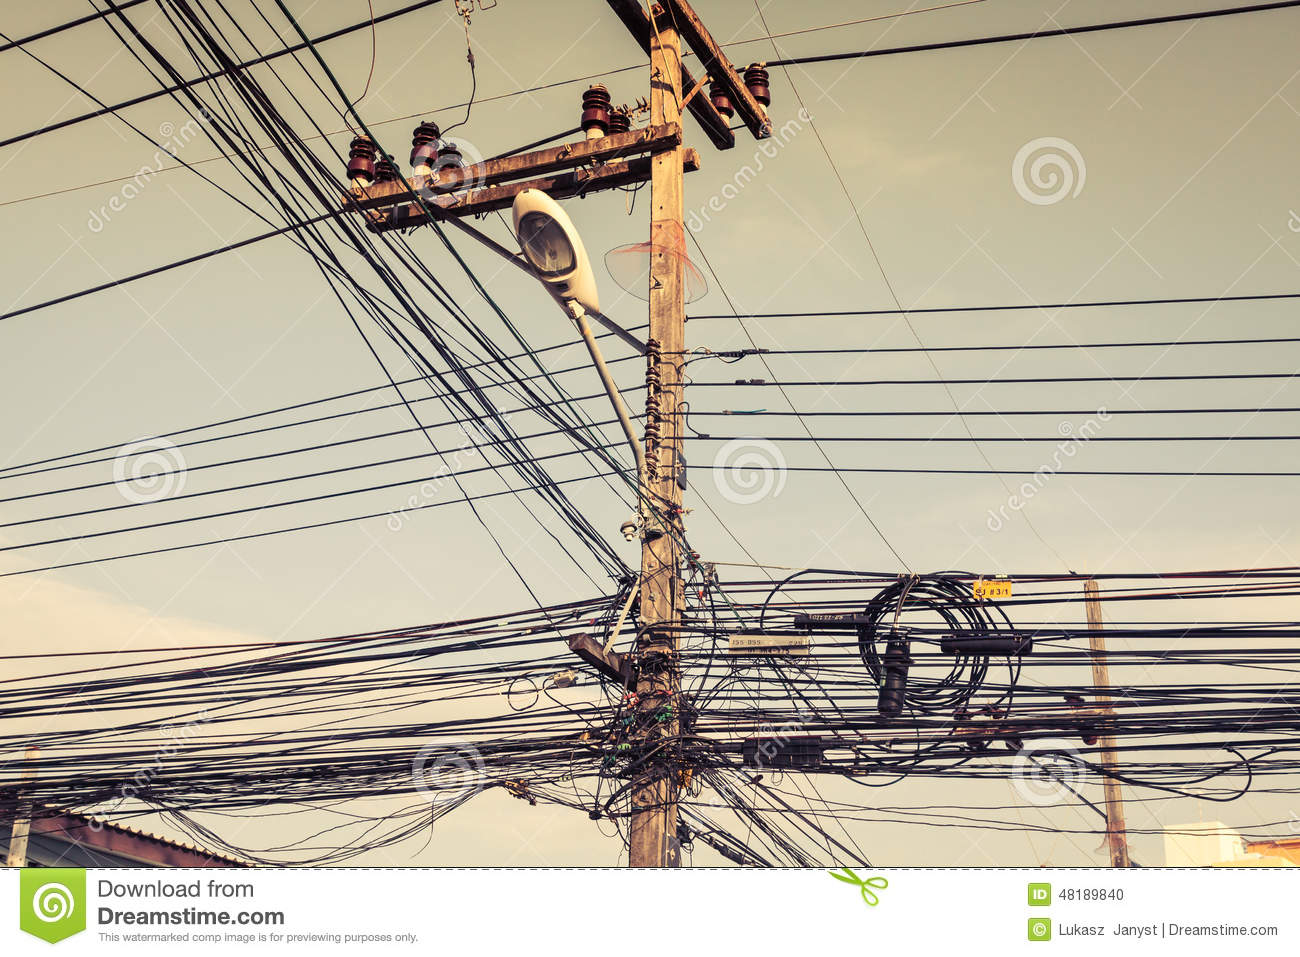 messy wires stock photos images u0026 pictures 516 images